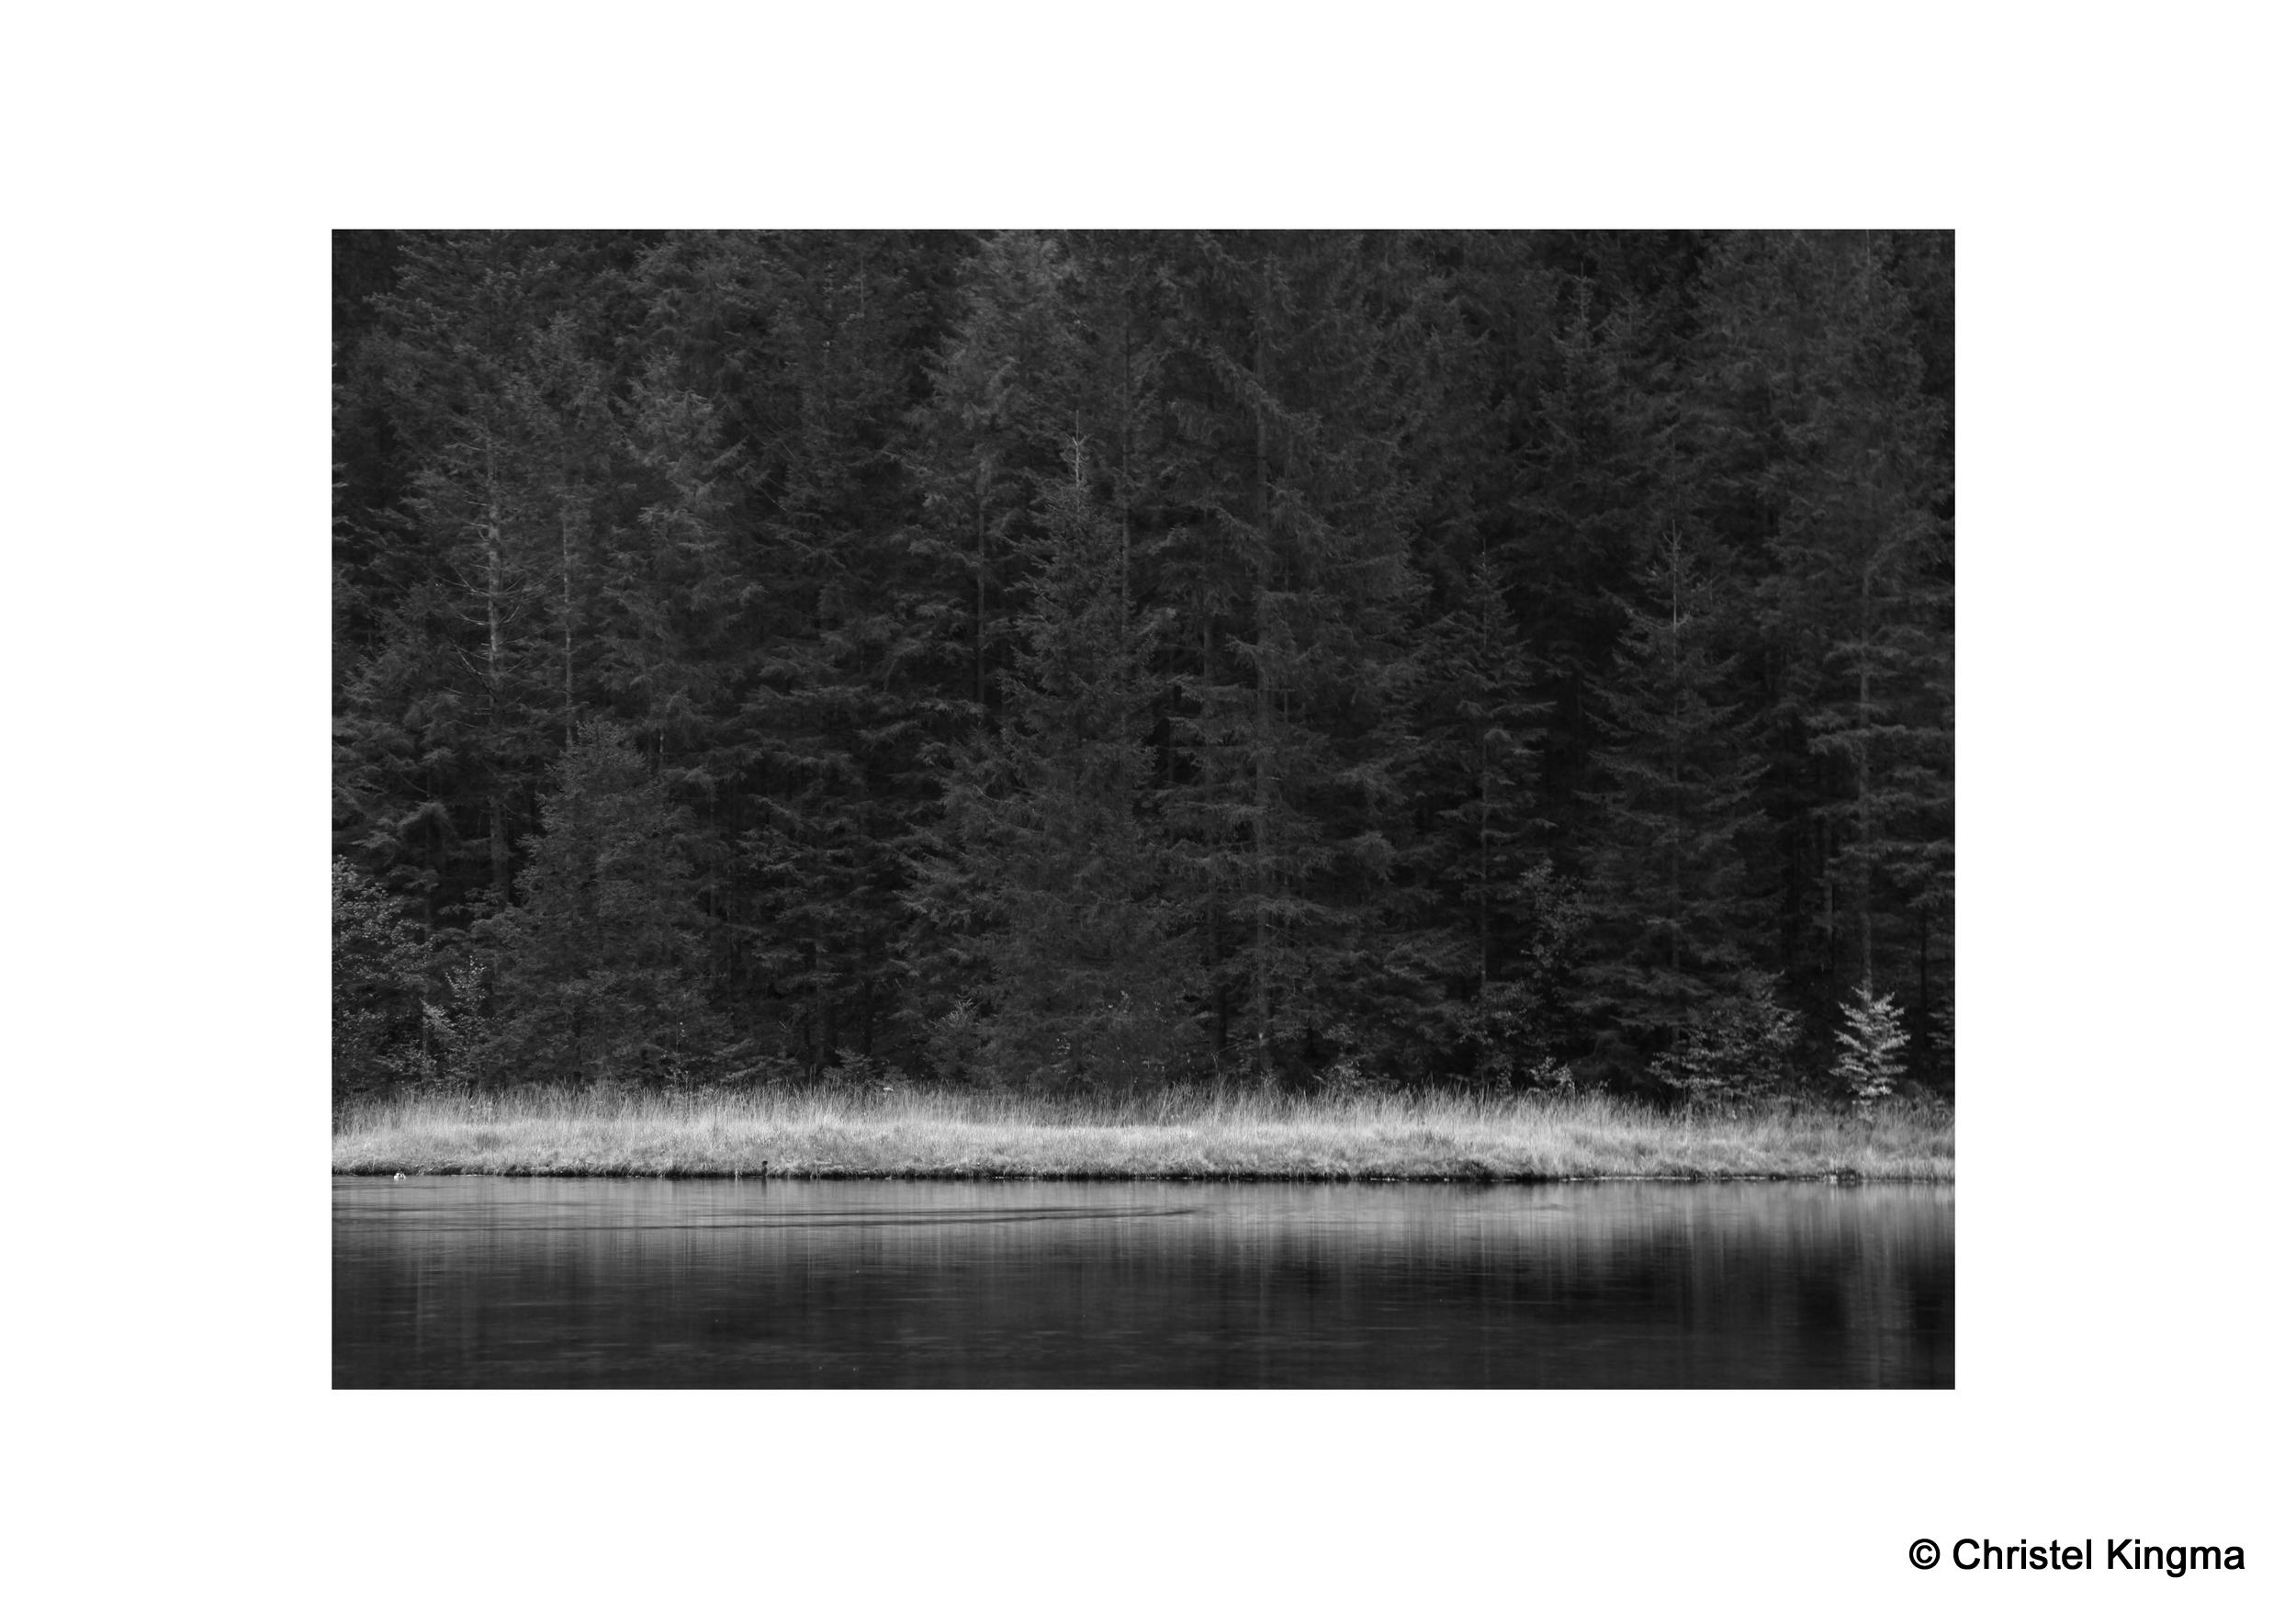 Inspired by Ansel Adams